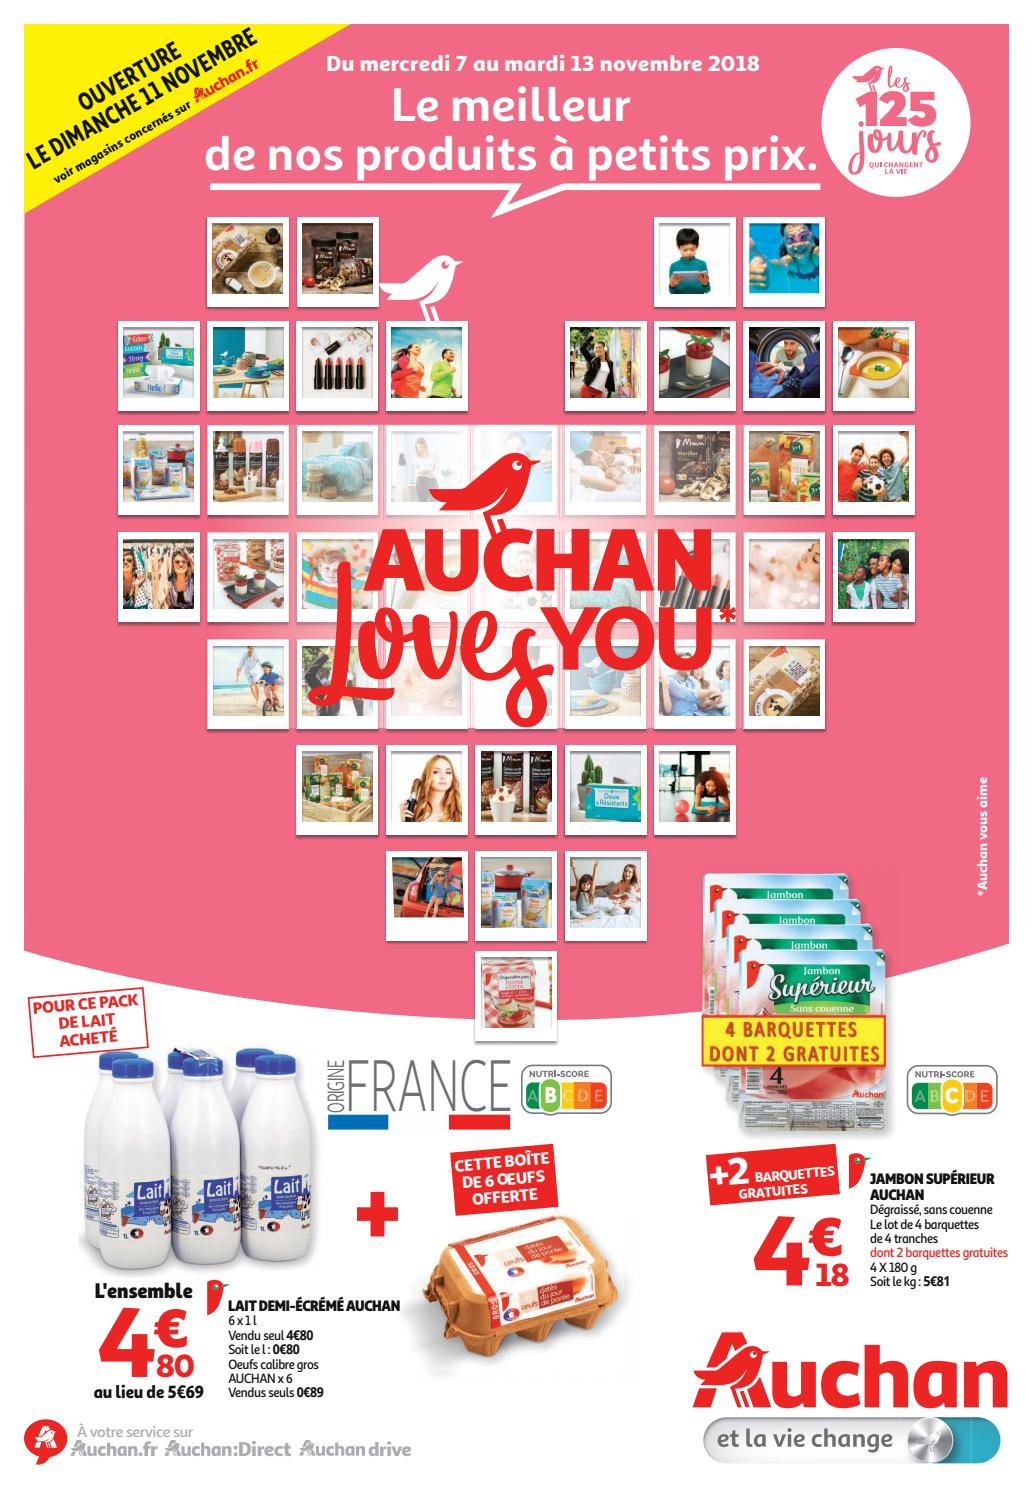 2f8b9bfb5ee Catalogue Auchan Hypermarché by Monsieurechantillons.fr - issuu